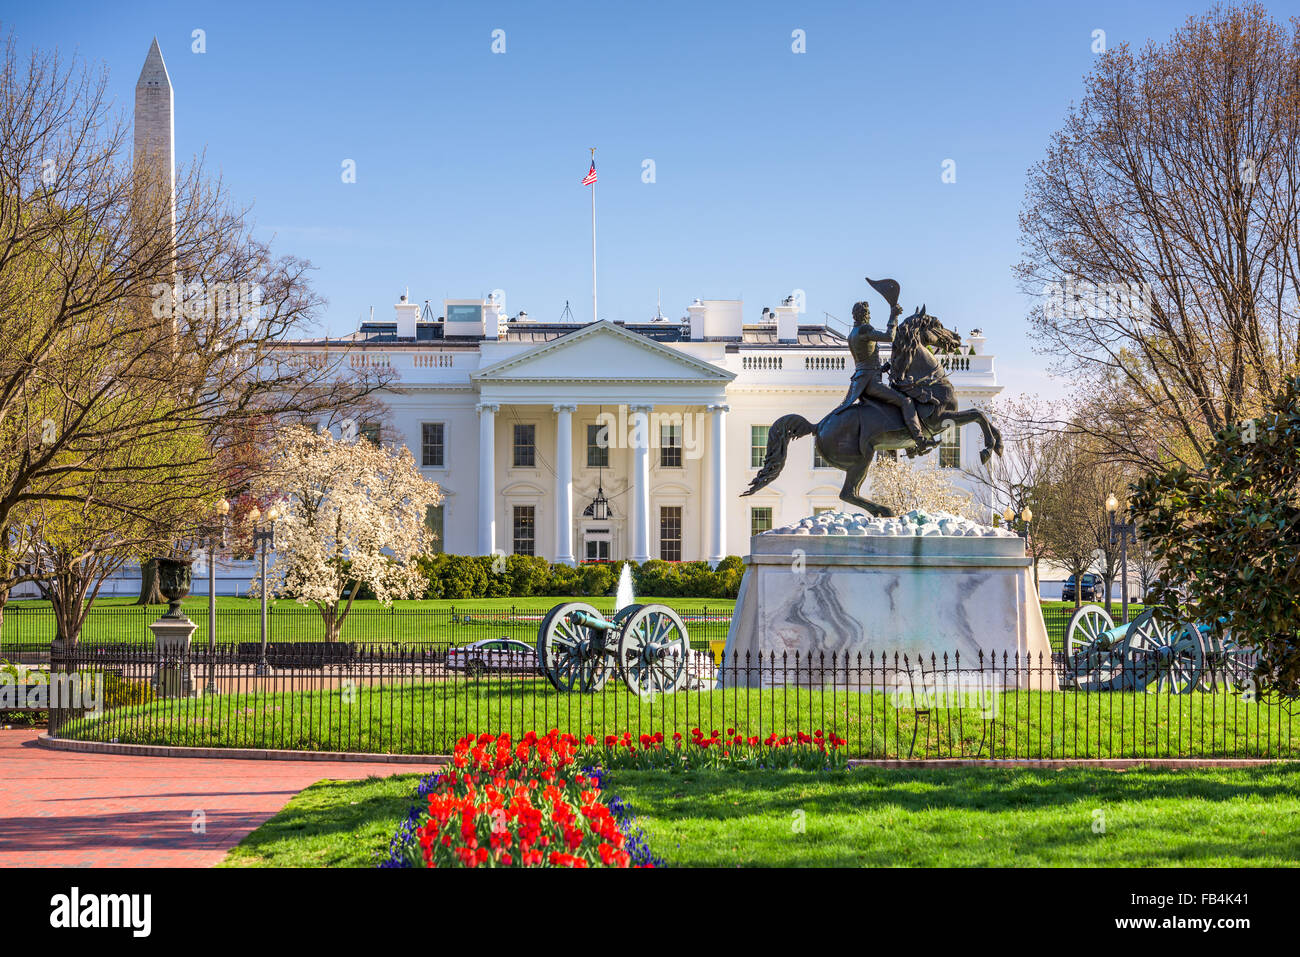 Washington, DC at the White House and Lafayette Square. - Stock Image